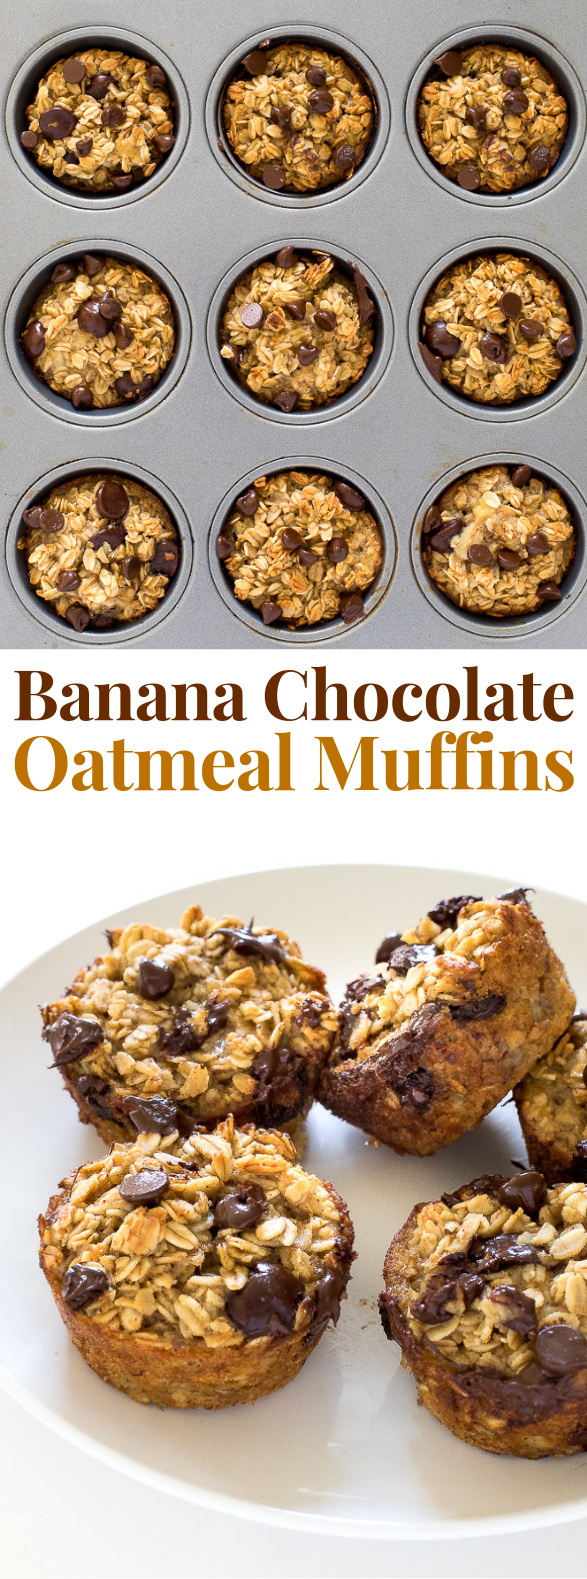 Healthy Banana Chocolate Chip Oatmeal Muffins #healthyrecipe #breakfast